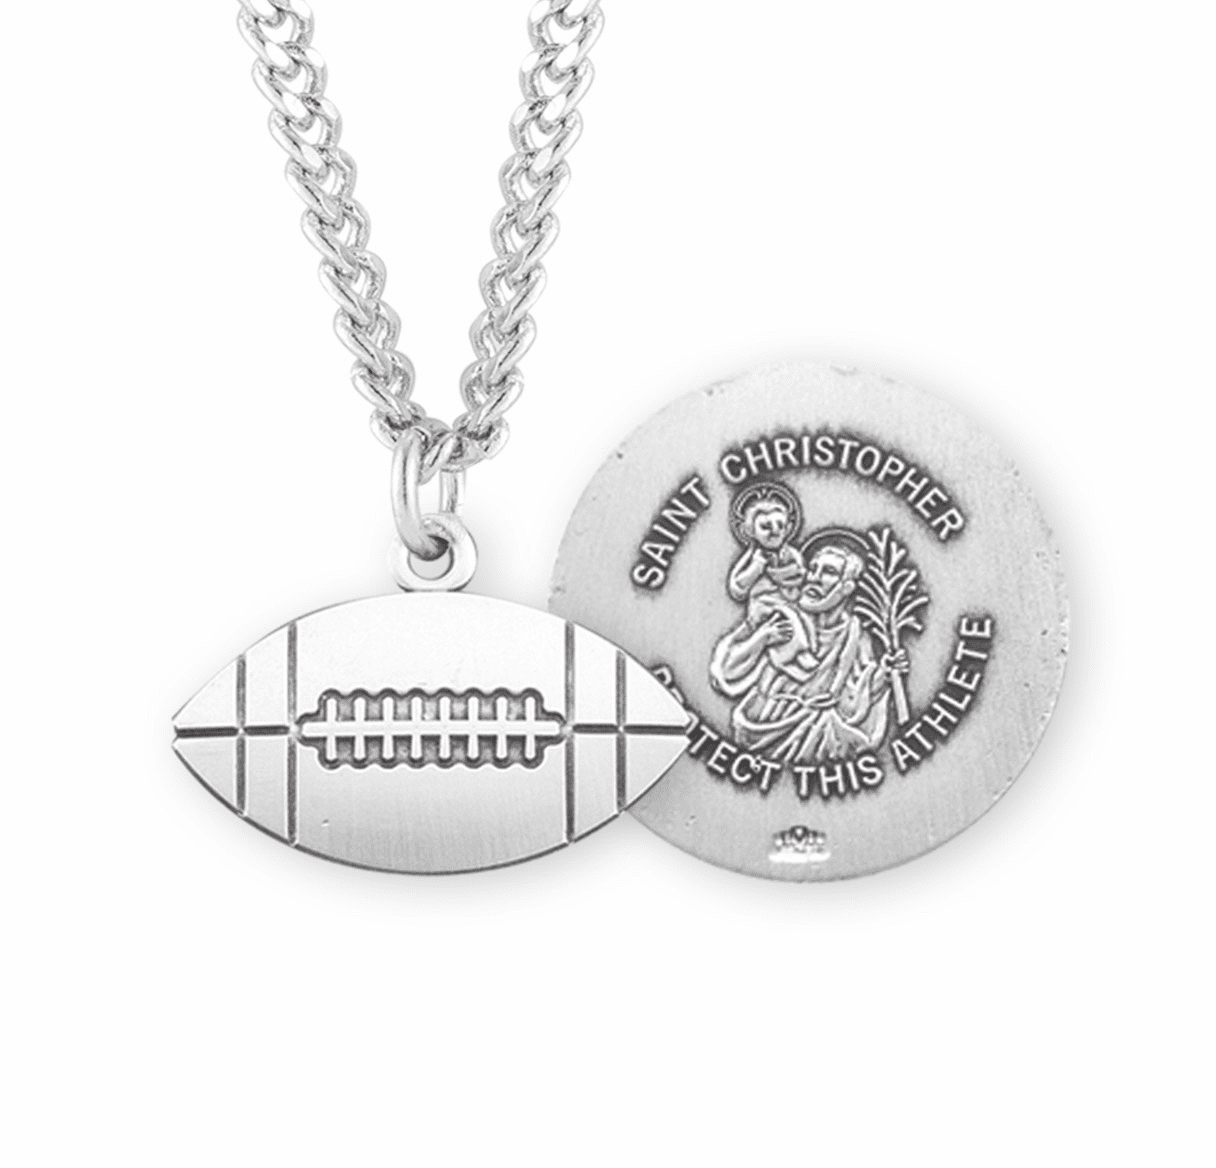 HMH Religious Football St Christopher Sterling Silver Saint Medal Necklace